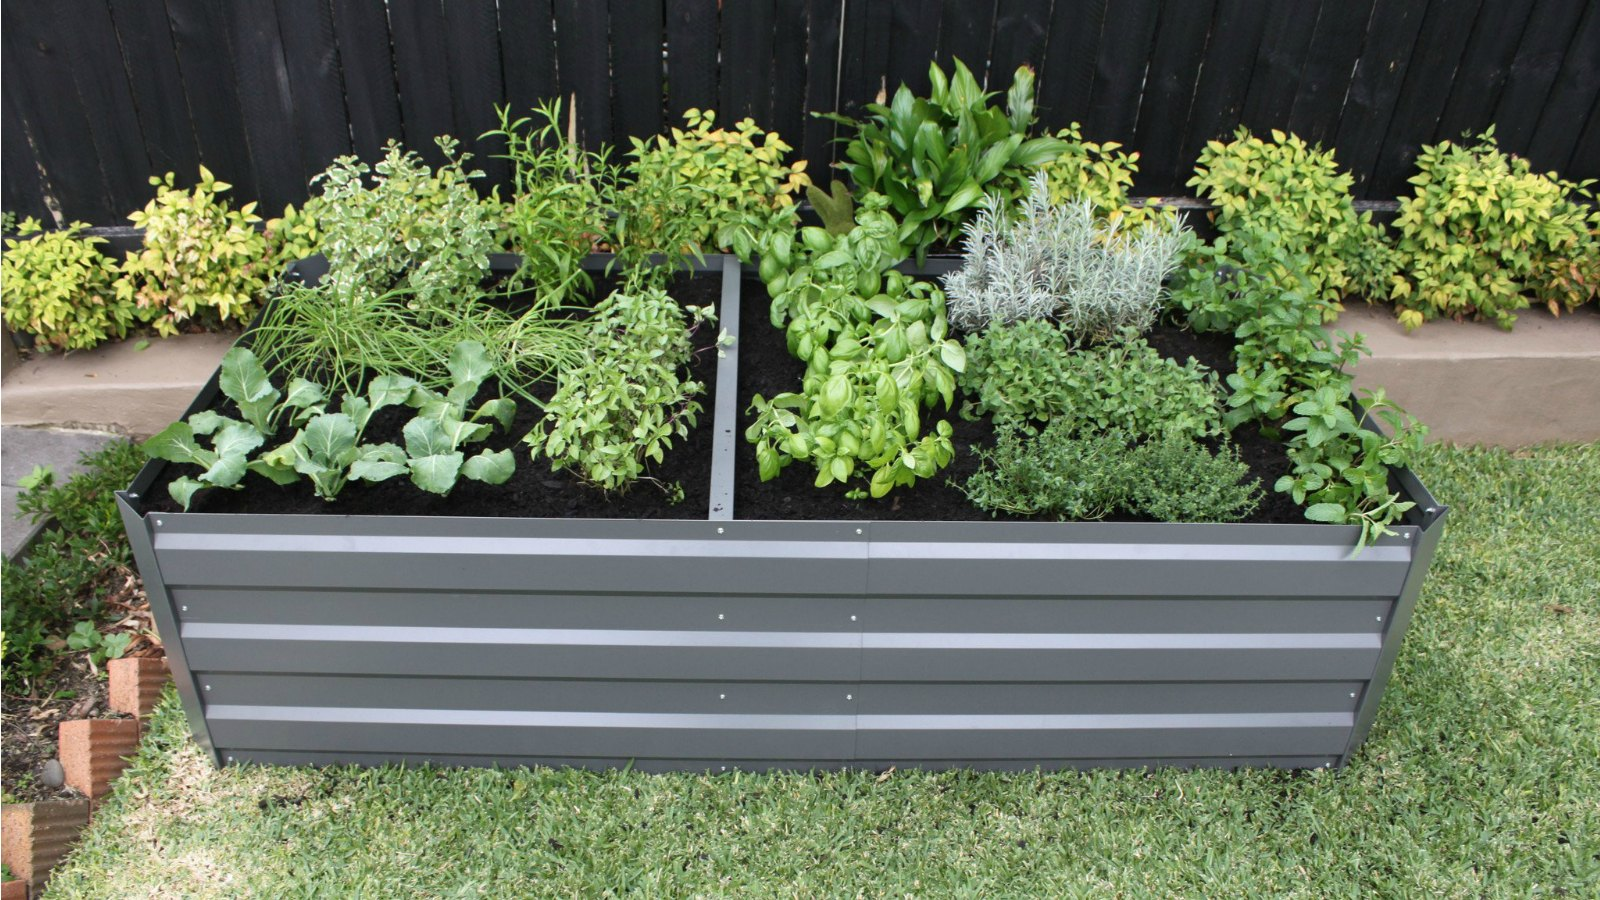 Benefits of raised garden beds you won't believe!